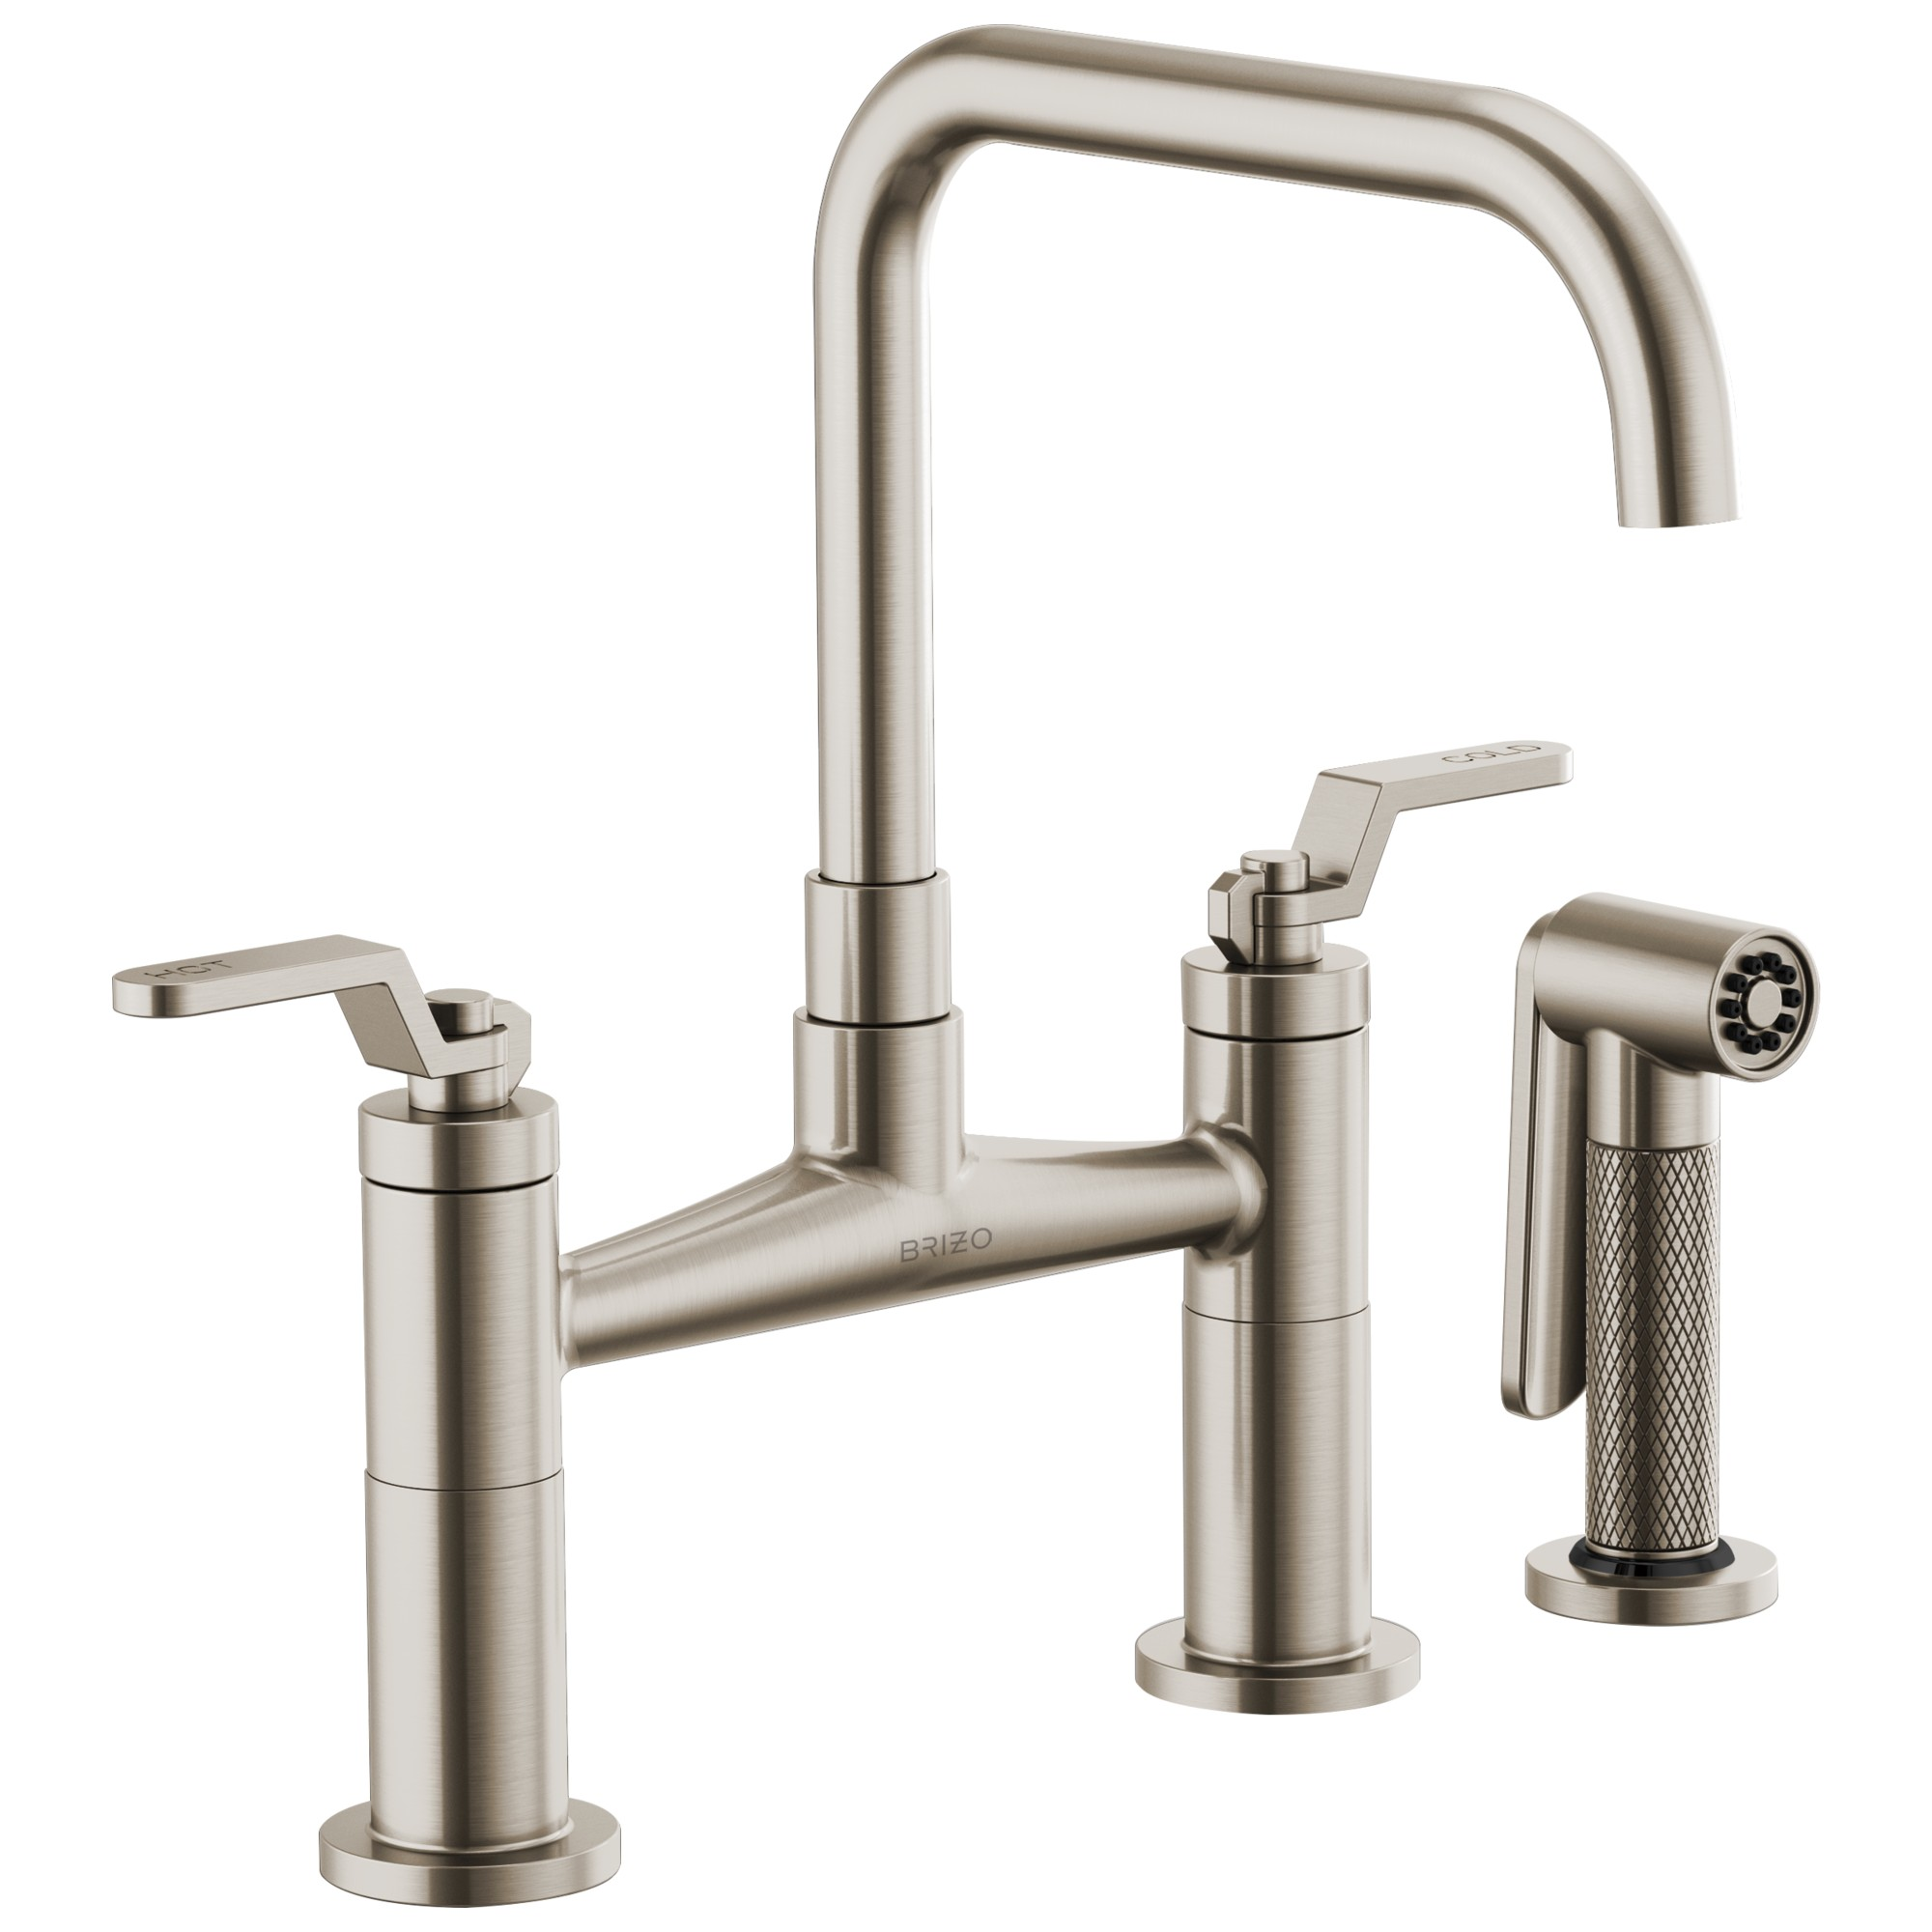 Brizo 62554LF-SS Litze Bridge Faucet with Square Spout and Industrial Handle - Stainless